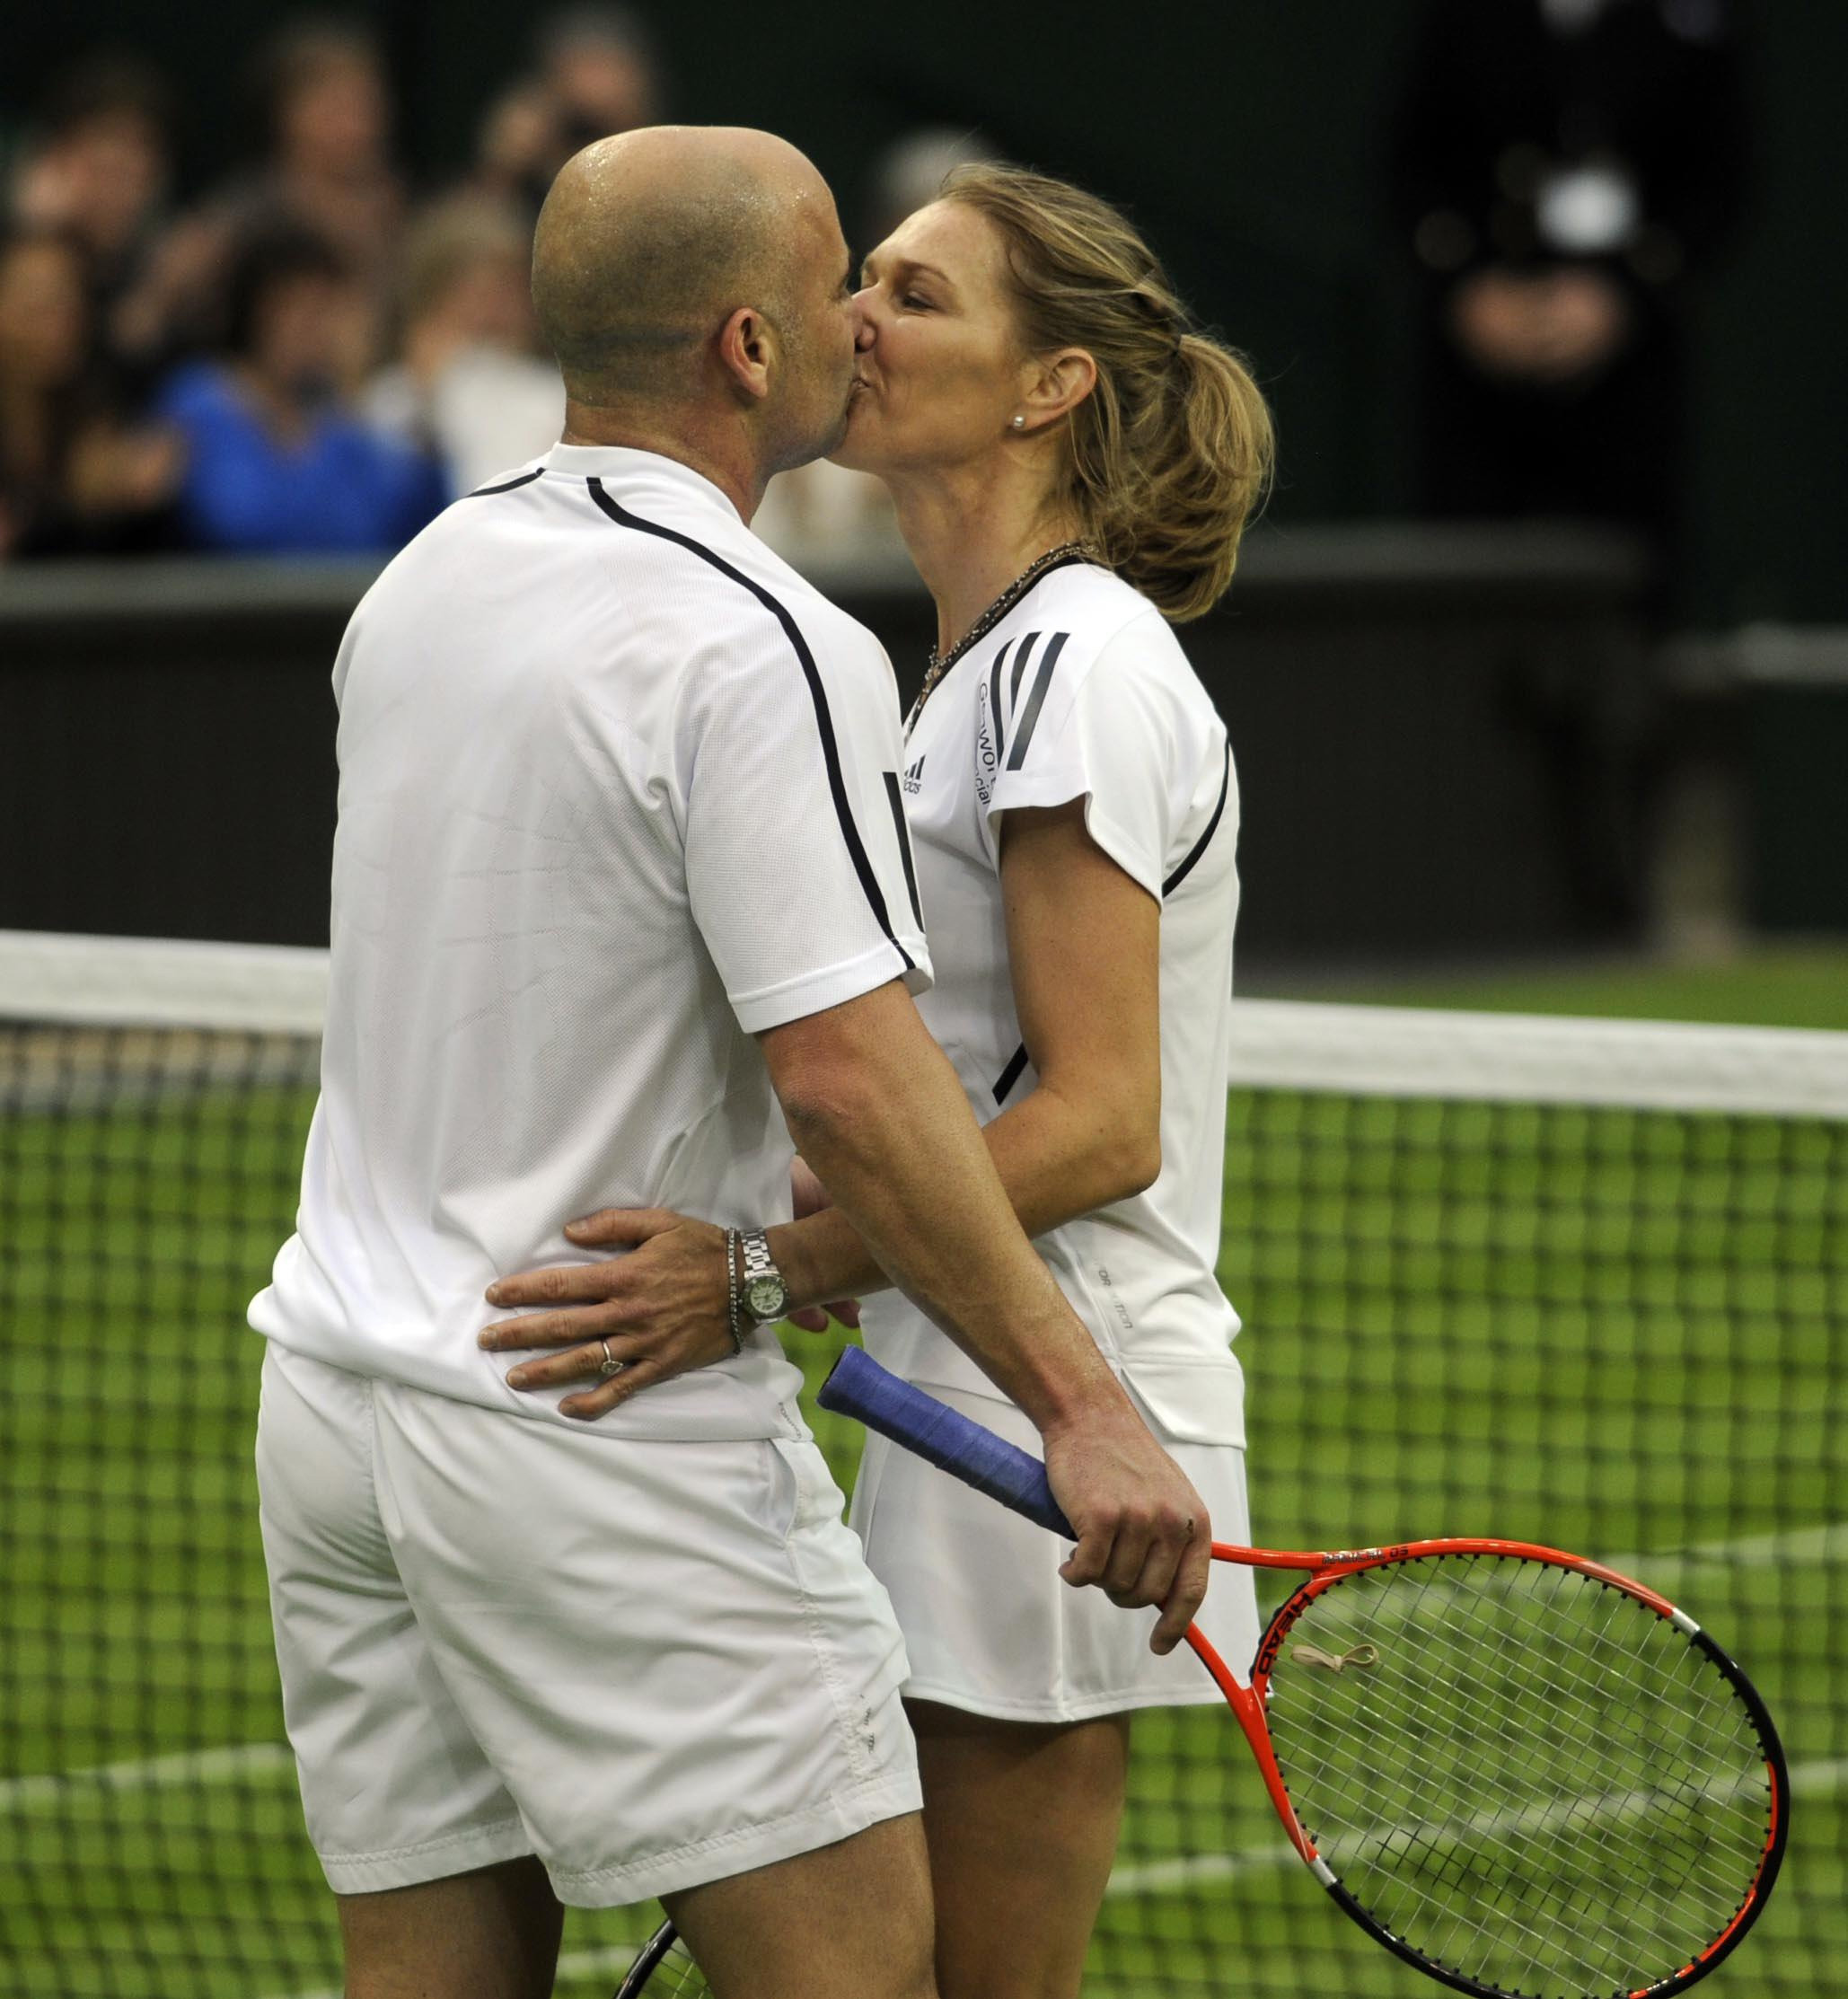 Former Wimbledon champion Steffi Graf kisses her husband and partner Andre Agassi (left) at the end of an exhibition match against Great Britain's Tim Henman and Kim Clijsters on centre court, during the Centre Court Celebration at The All England Lawn Tennis and Croquet Club, Wimbledon, London in 2009. (Rebecca Naden/PA)